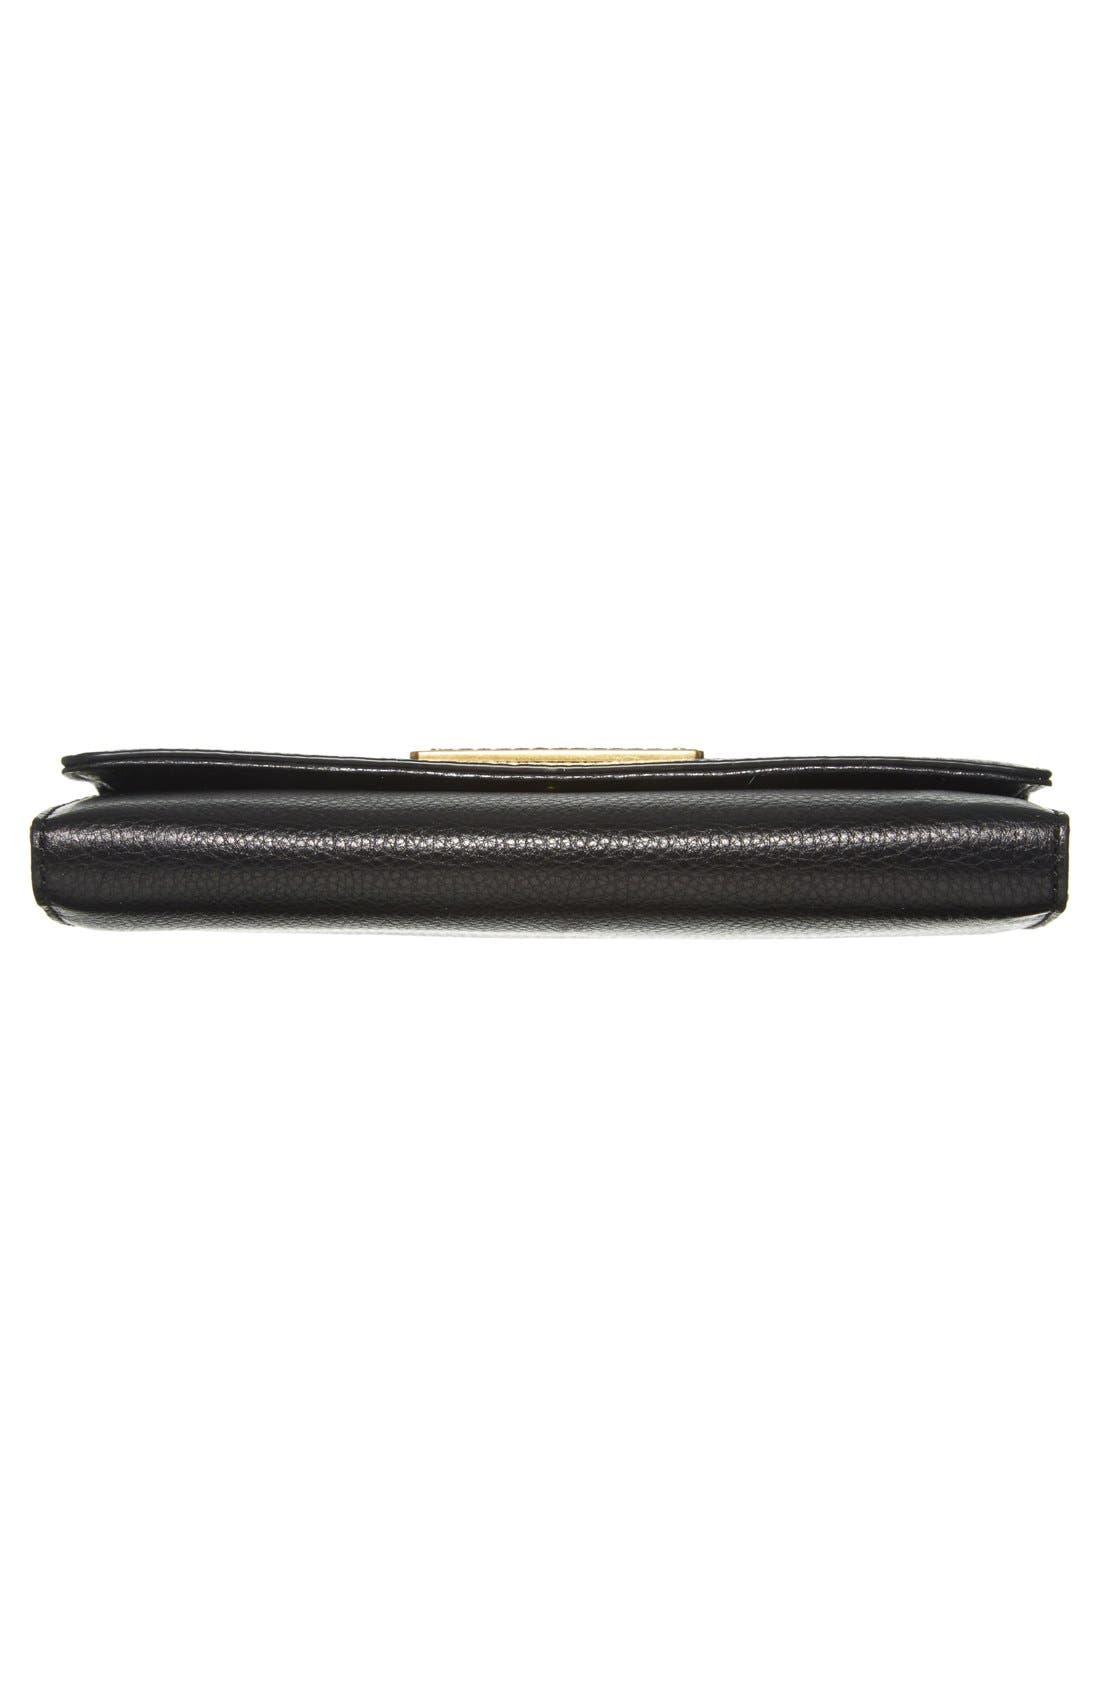 MARC JACOBS,                             MARC BY MARC JACOBS 'Too Hot to Handle' Long Trifold Wallet,                             Alternate thumbnail 4, color,                             001